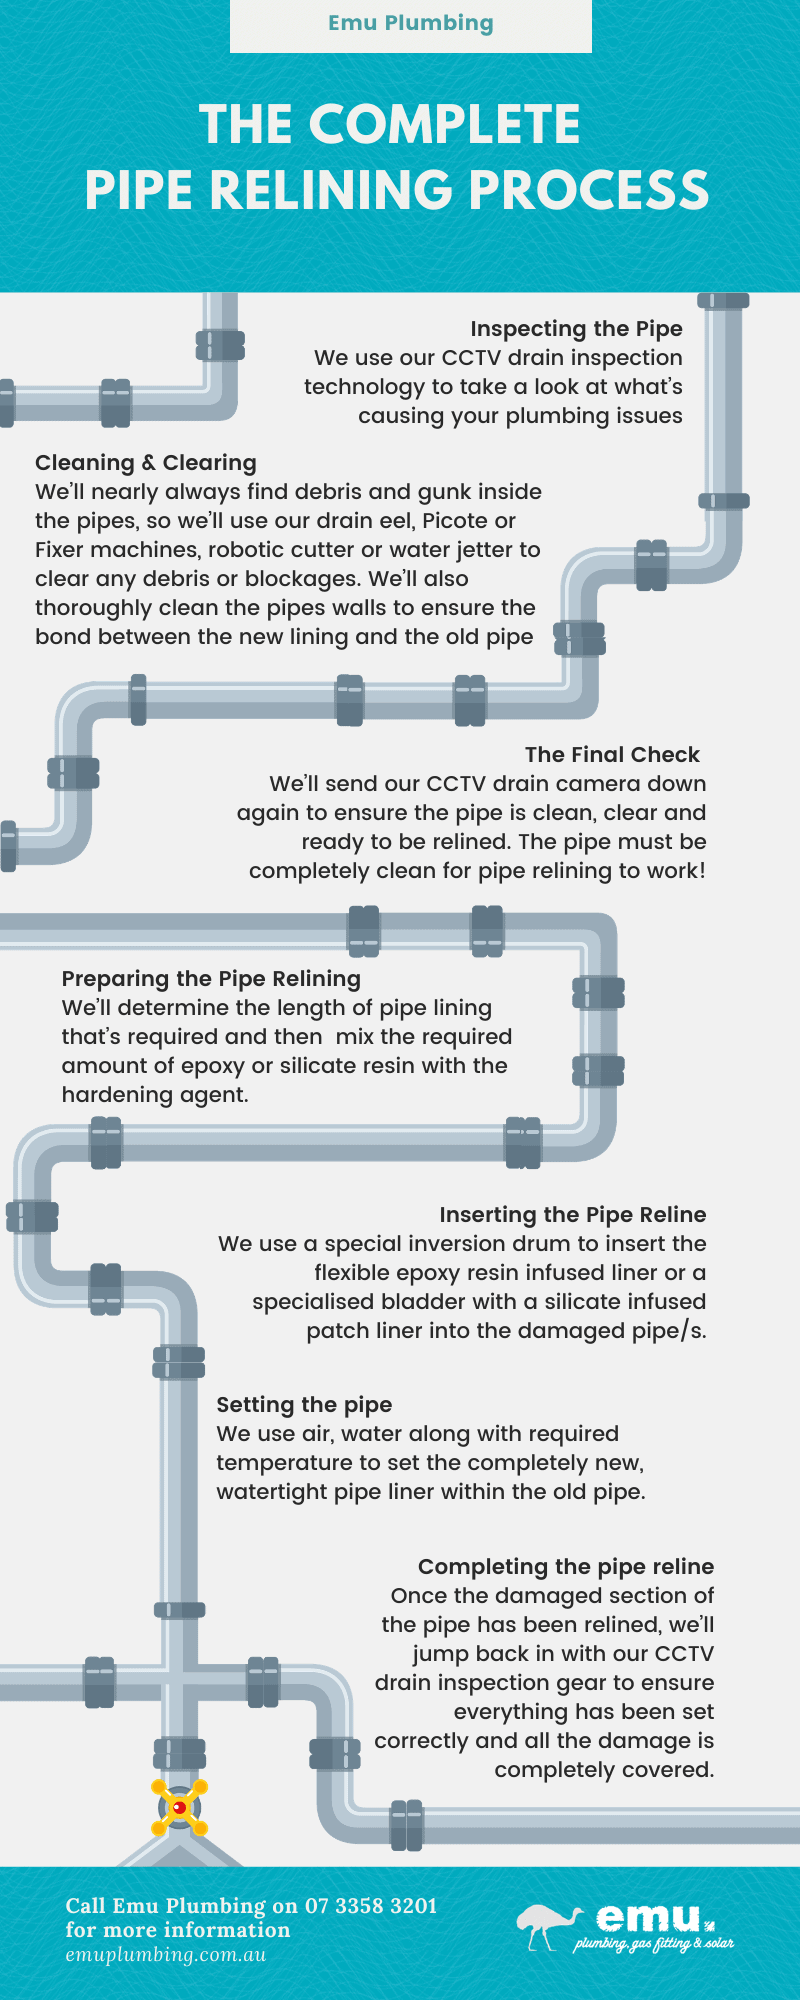 The pipe relining process infographic